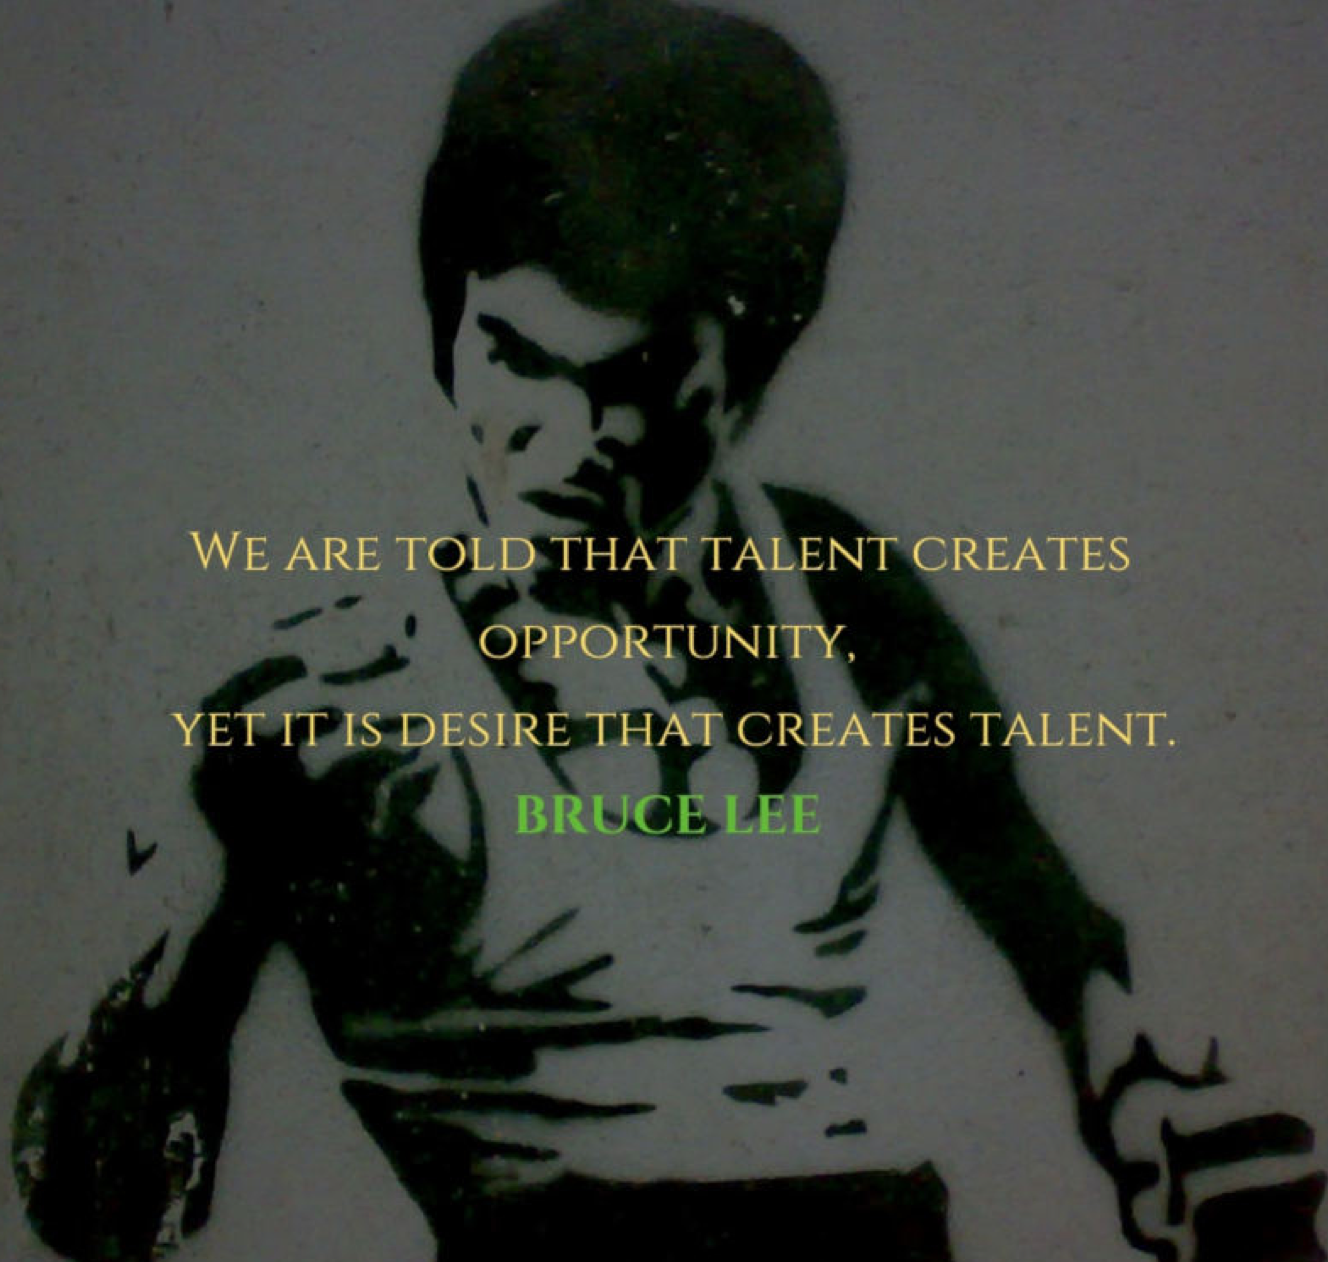 We are told that talent creates opportunity, yet it is desire that creates talent. Bruce Lee Von Giga Paitchadze - originally posted to Flickr as Bruce Lee, CC BY 2.0, https://commons.wikimedia.org/w/index.php?curid=4218734